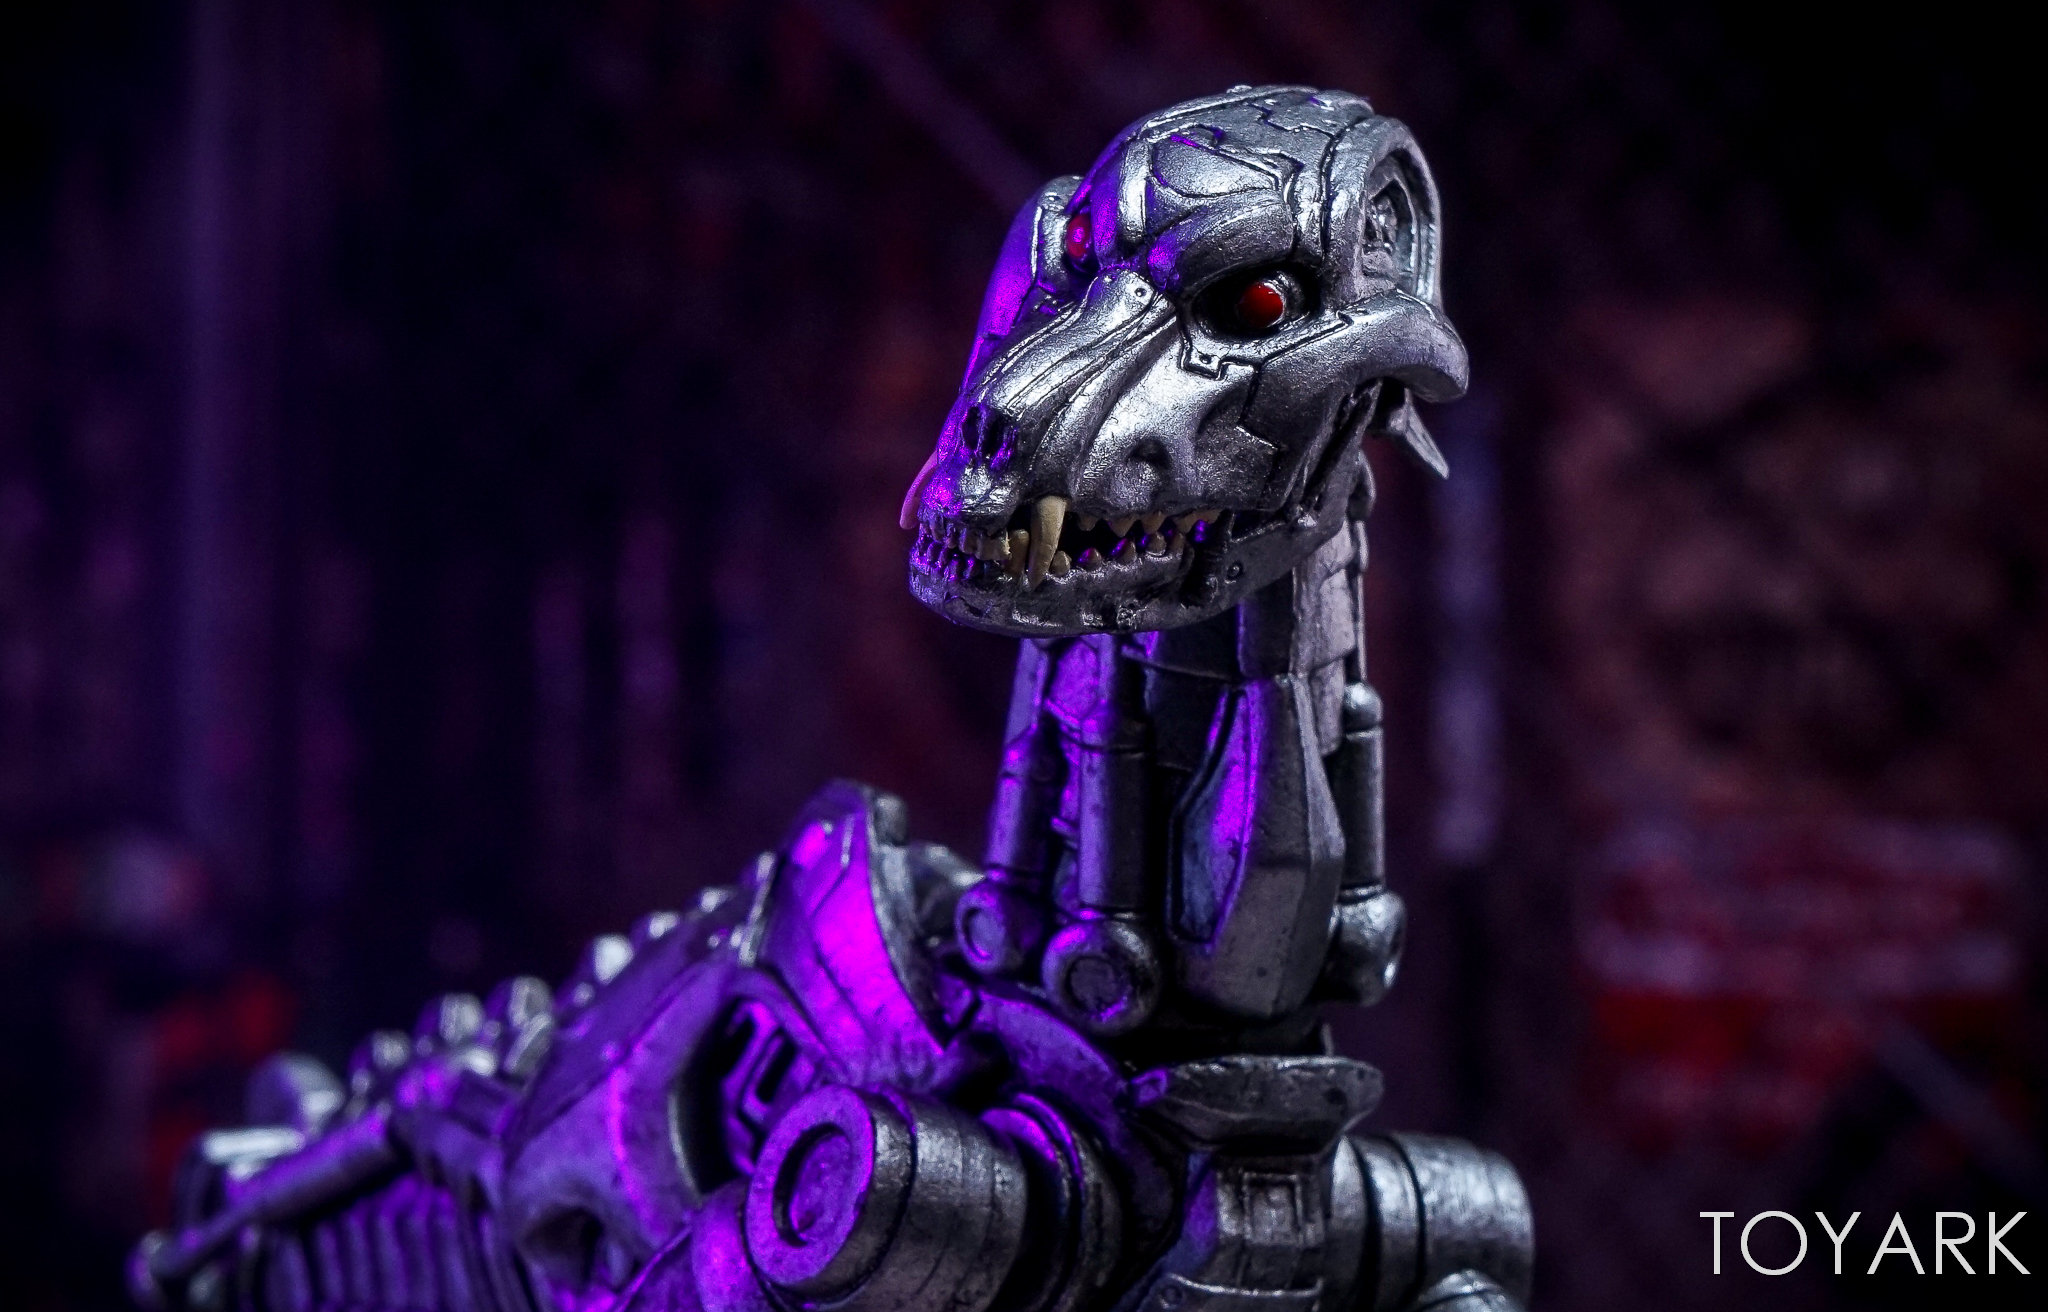 http://news.toyark.com/wp-content/uploads/sites/4/2017/12/NECA-EndoCop-and-Terminator-Dog-028.jpg